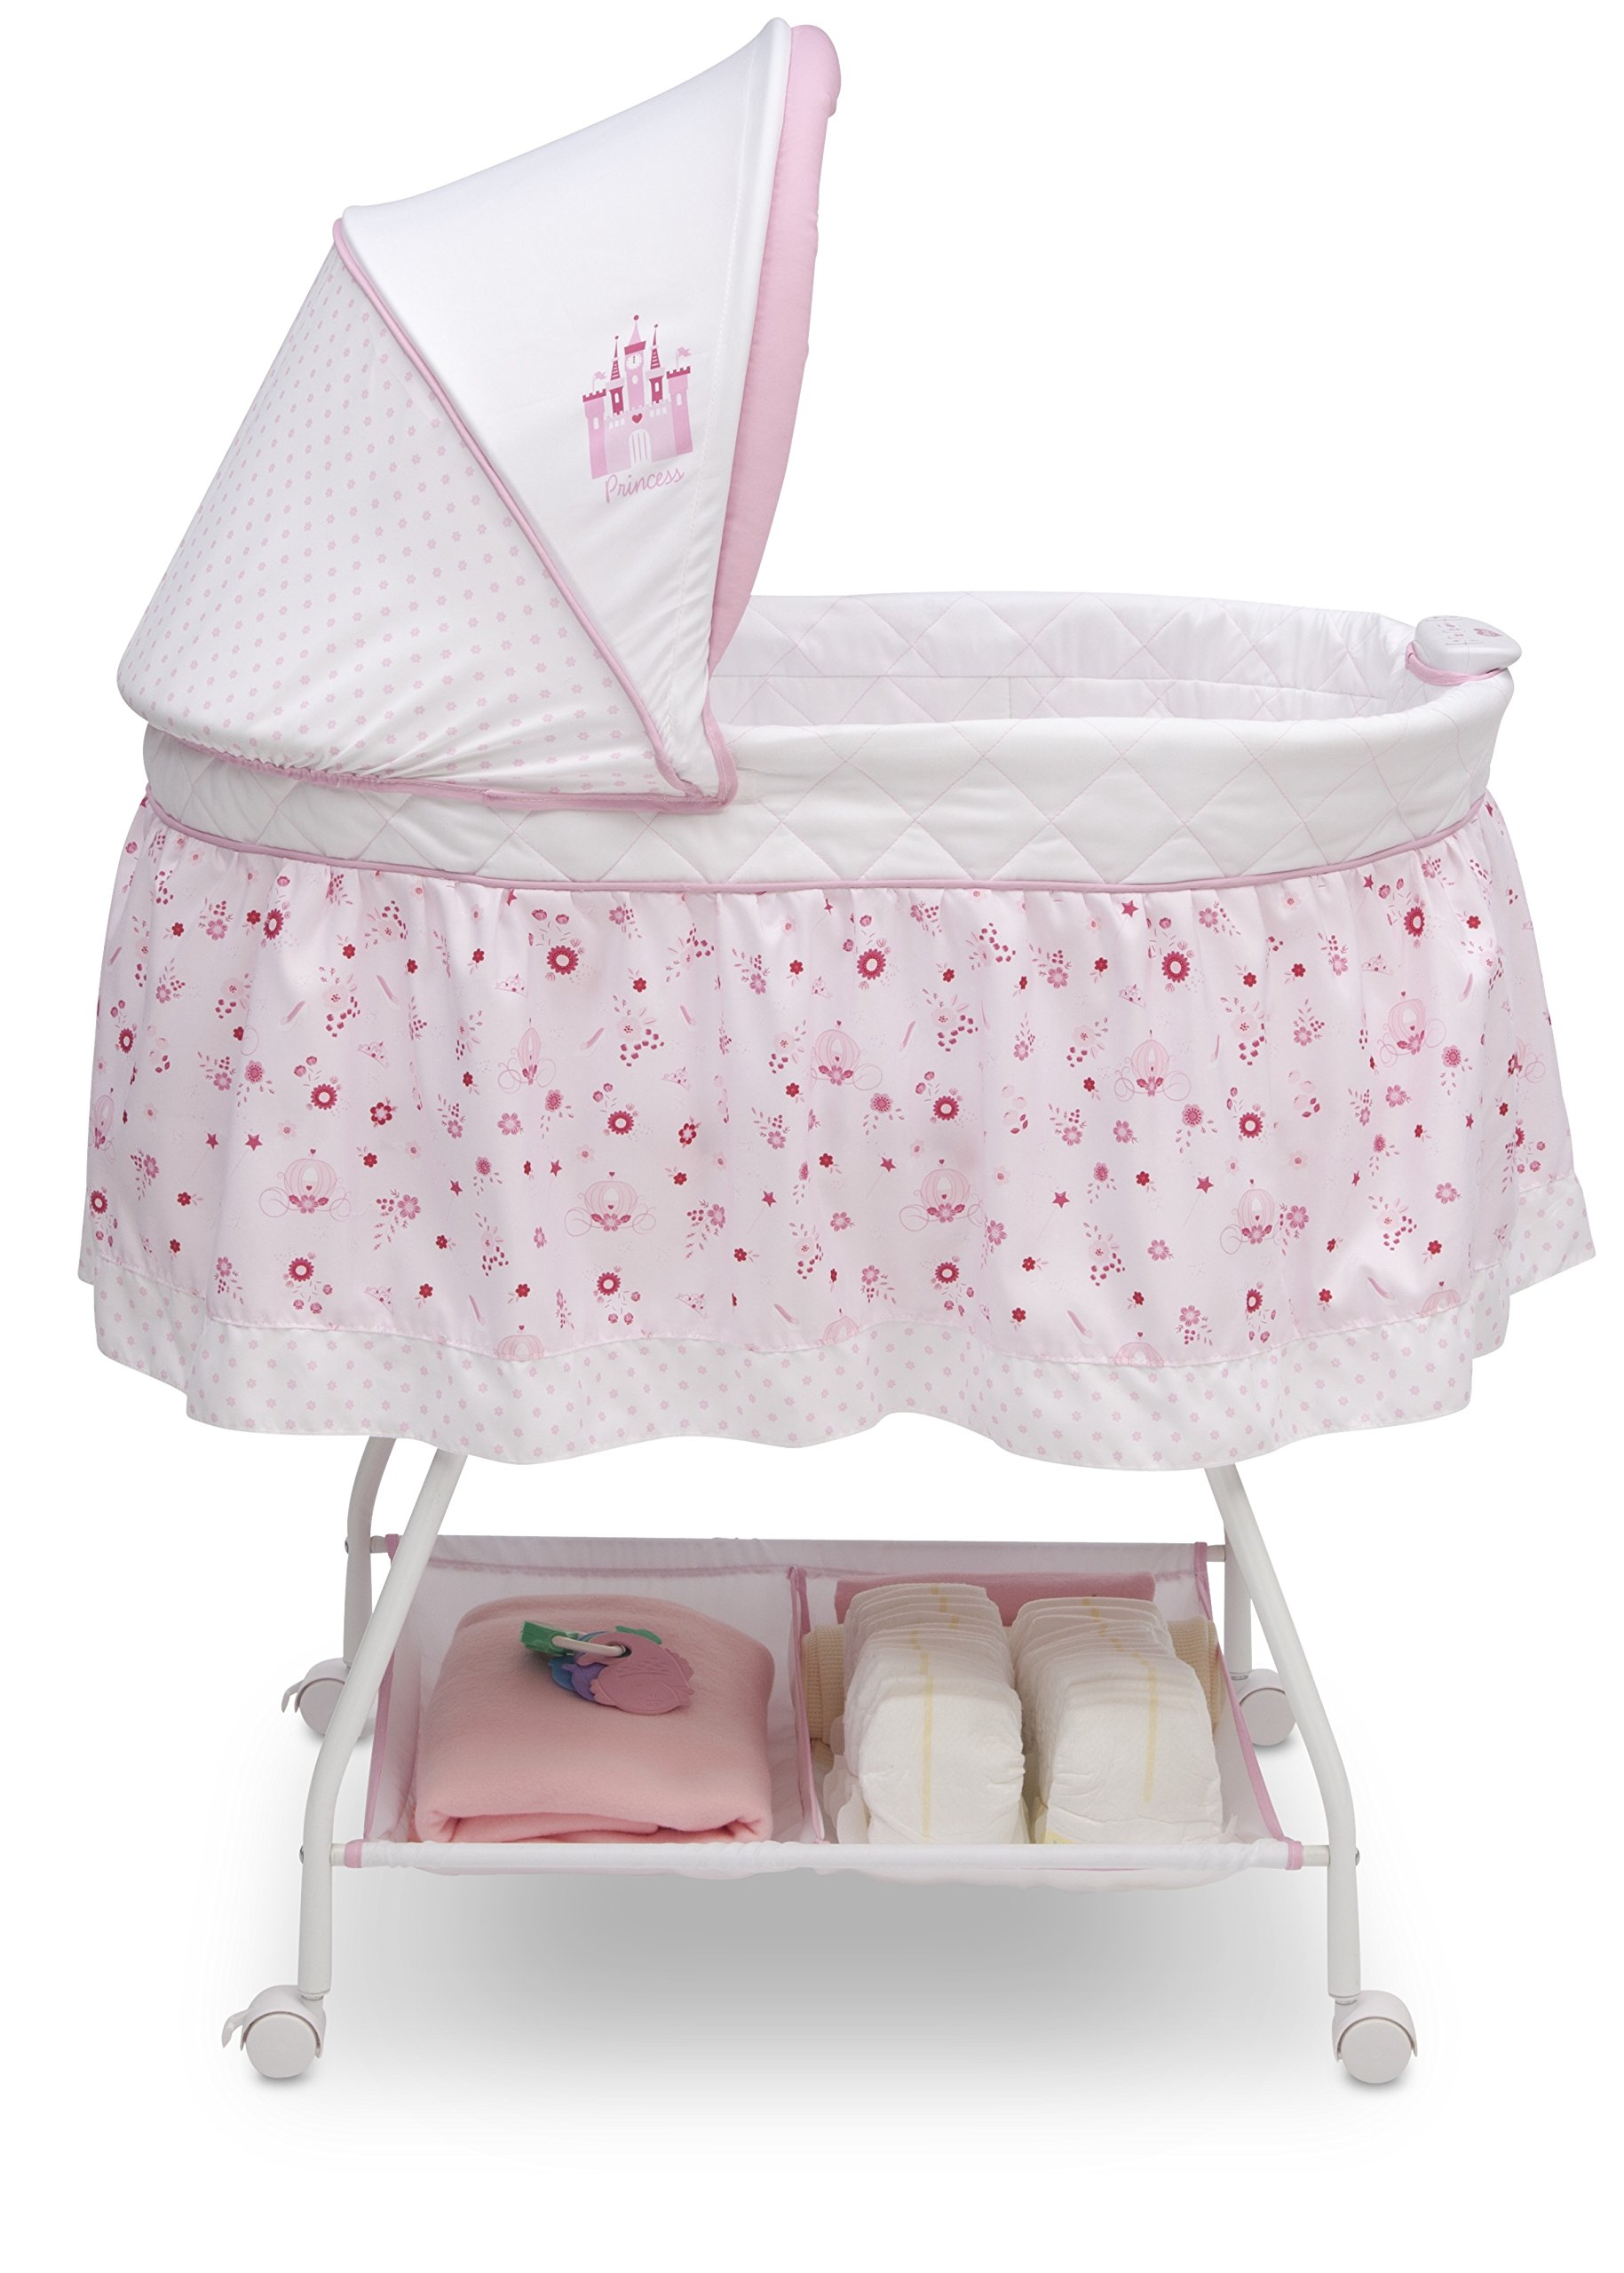 Disney Baby Ultimate Sweet Beginnings Bedside Bassinet – Portable Crib with Lights, Sounds and Vibrations, Disney Princess